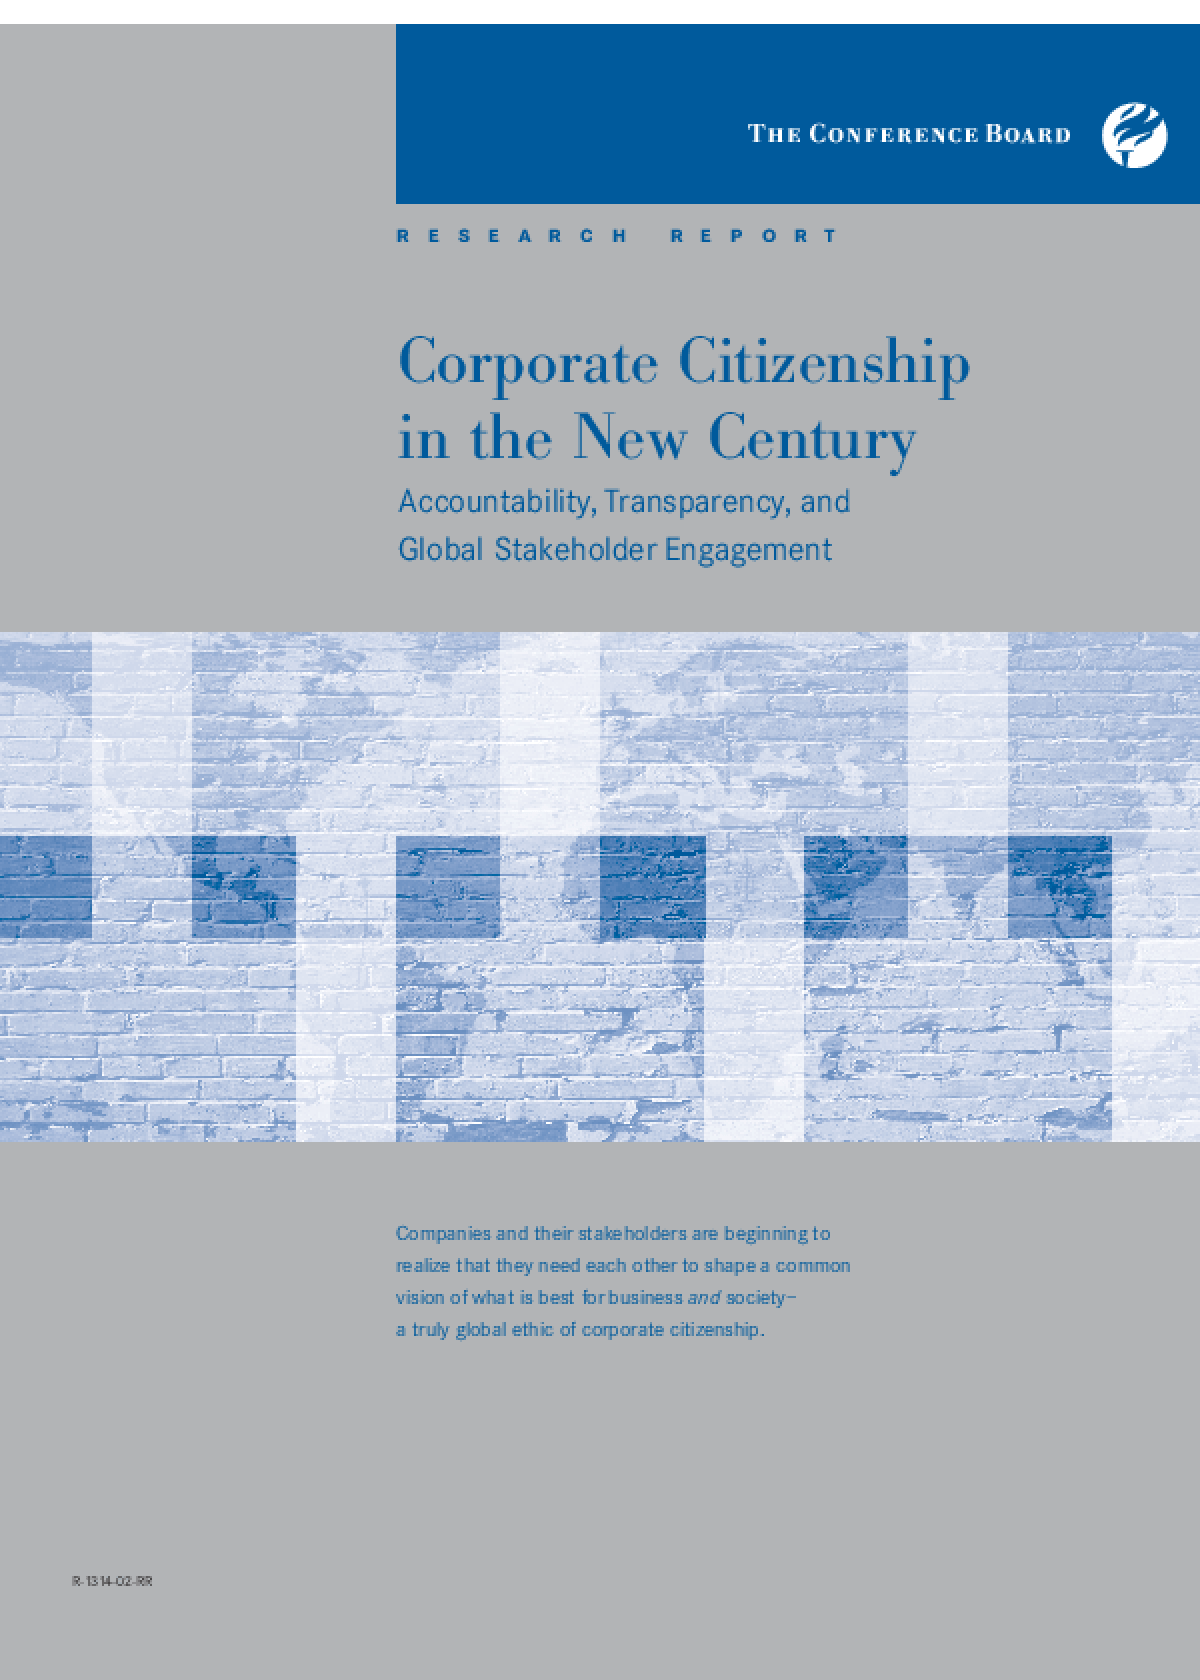 Corporate Citizenship in the New Century: Accountability, Transparency, and Global Stakeholder Engagement